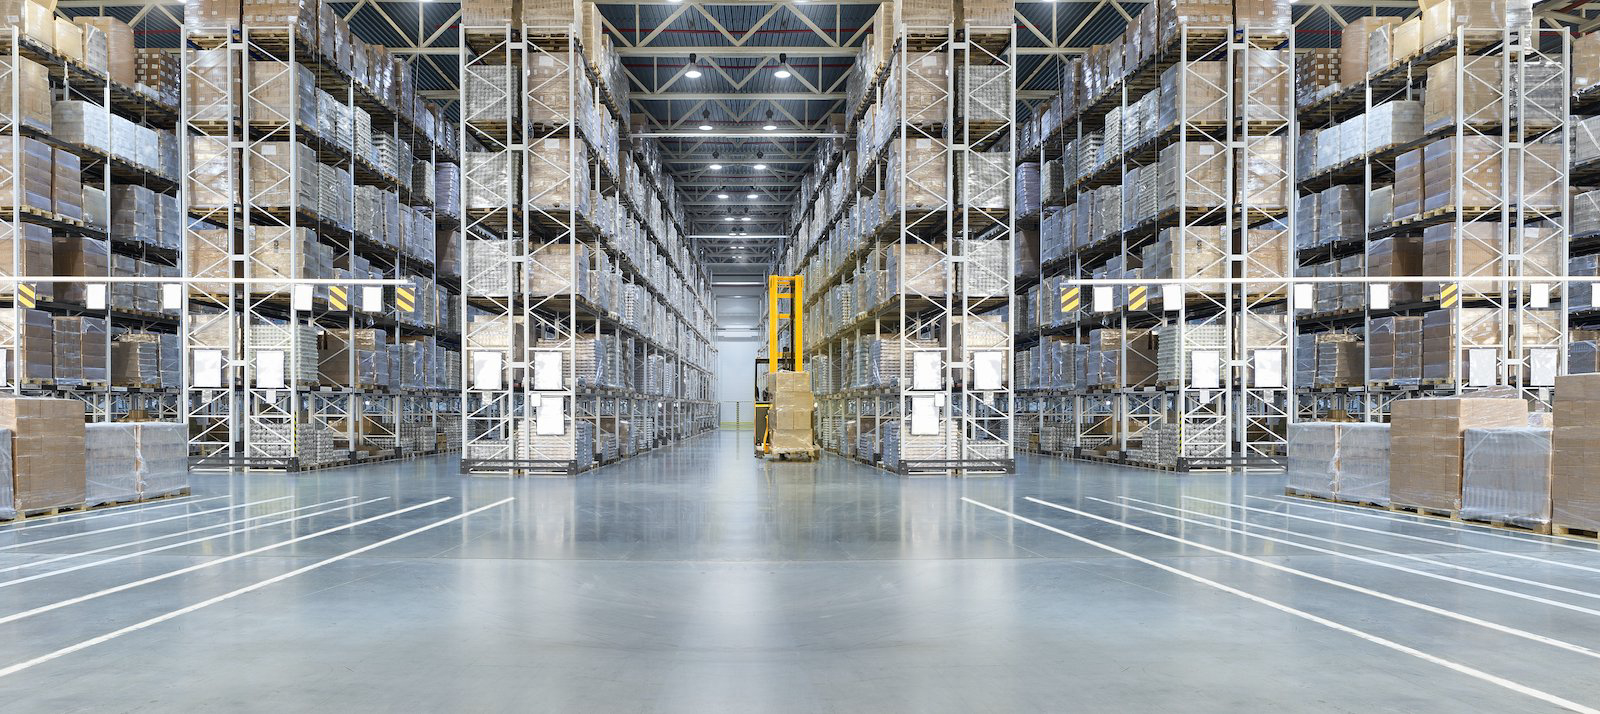 GfK Distribution and Supply Chain Management Insights